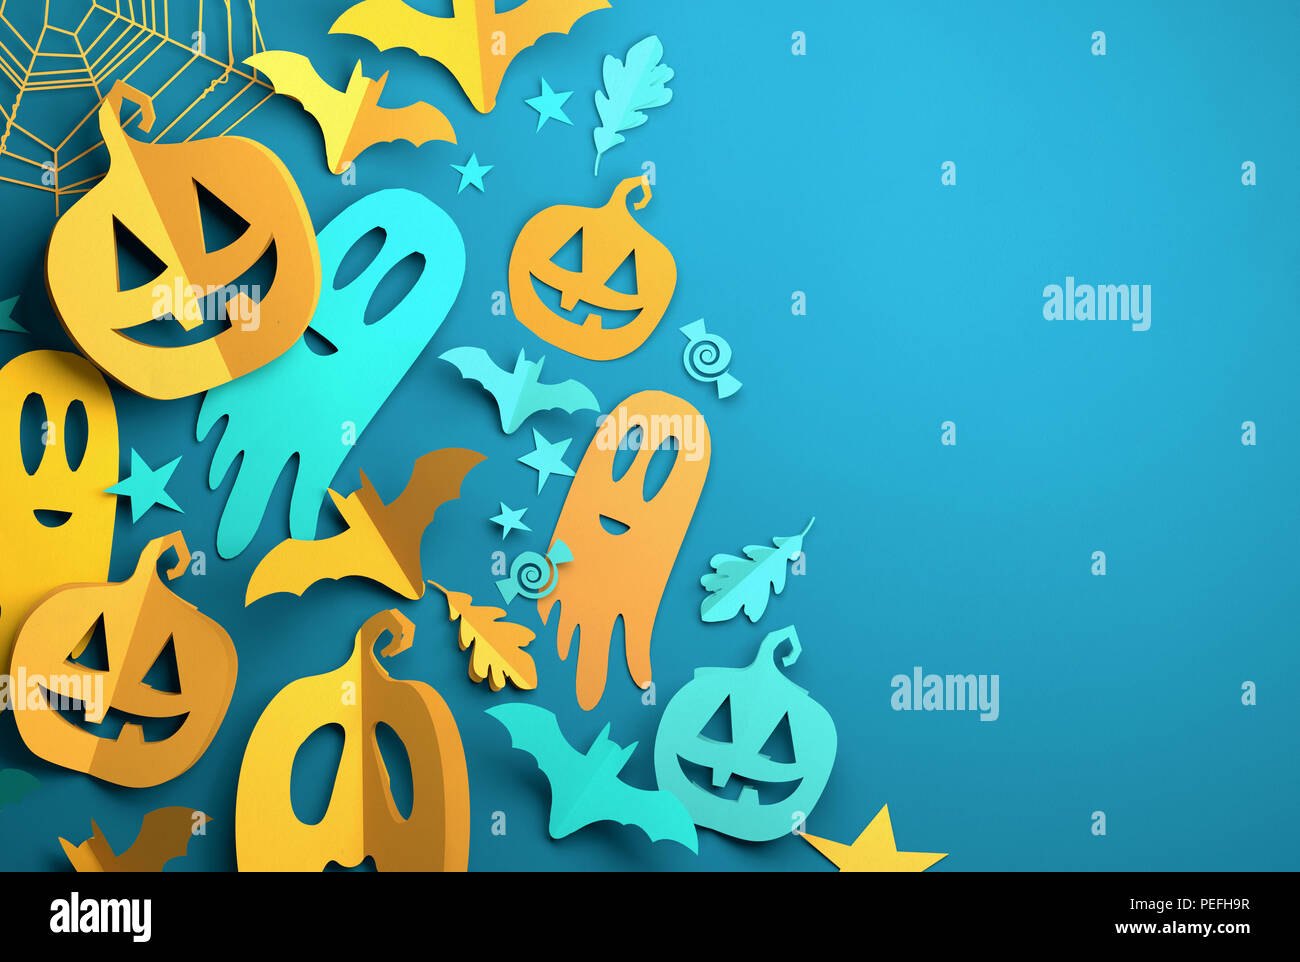 Folded Paper art origami. Blue Halloween background with cut out pumpkins, paper bats, ghosts and other decorations with room for text. 3D illustratio - Stock Image